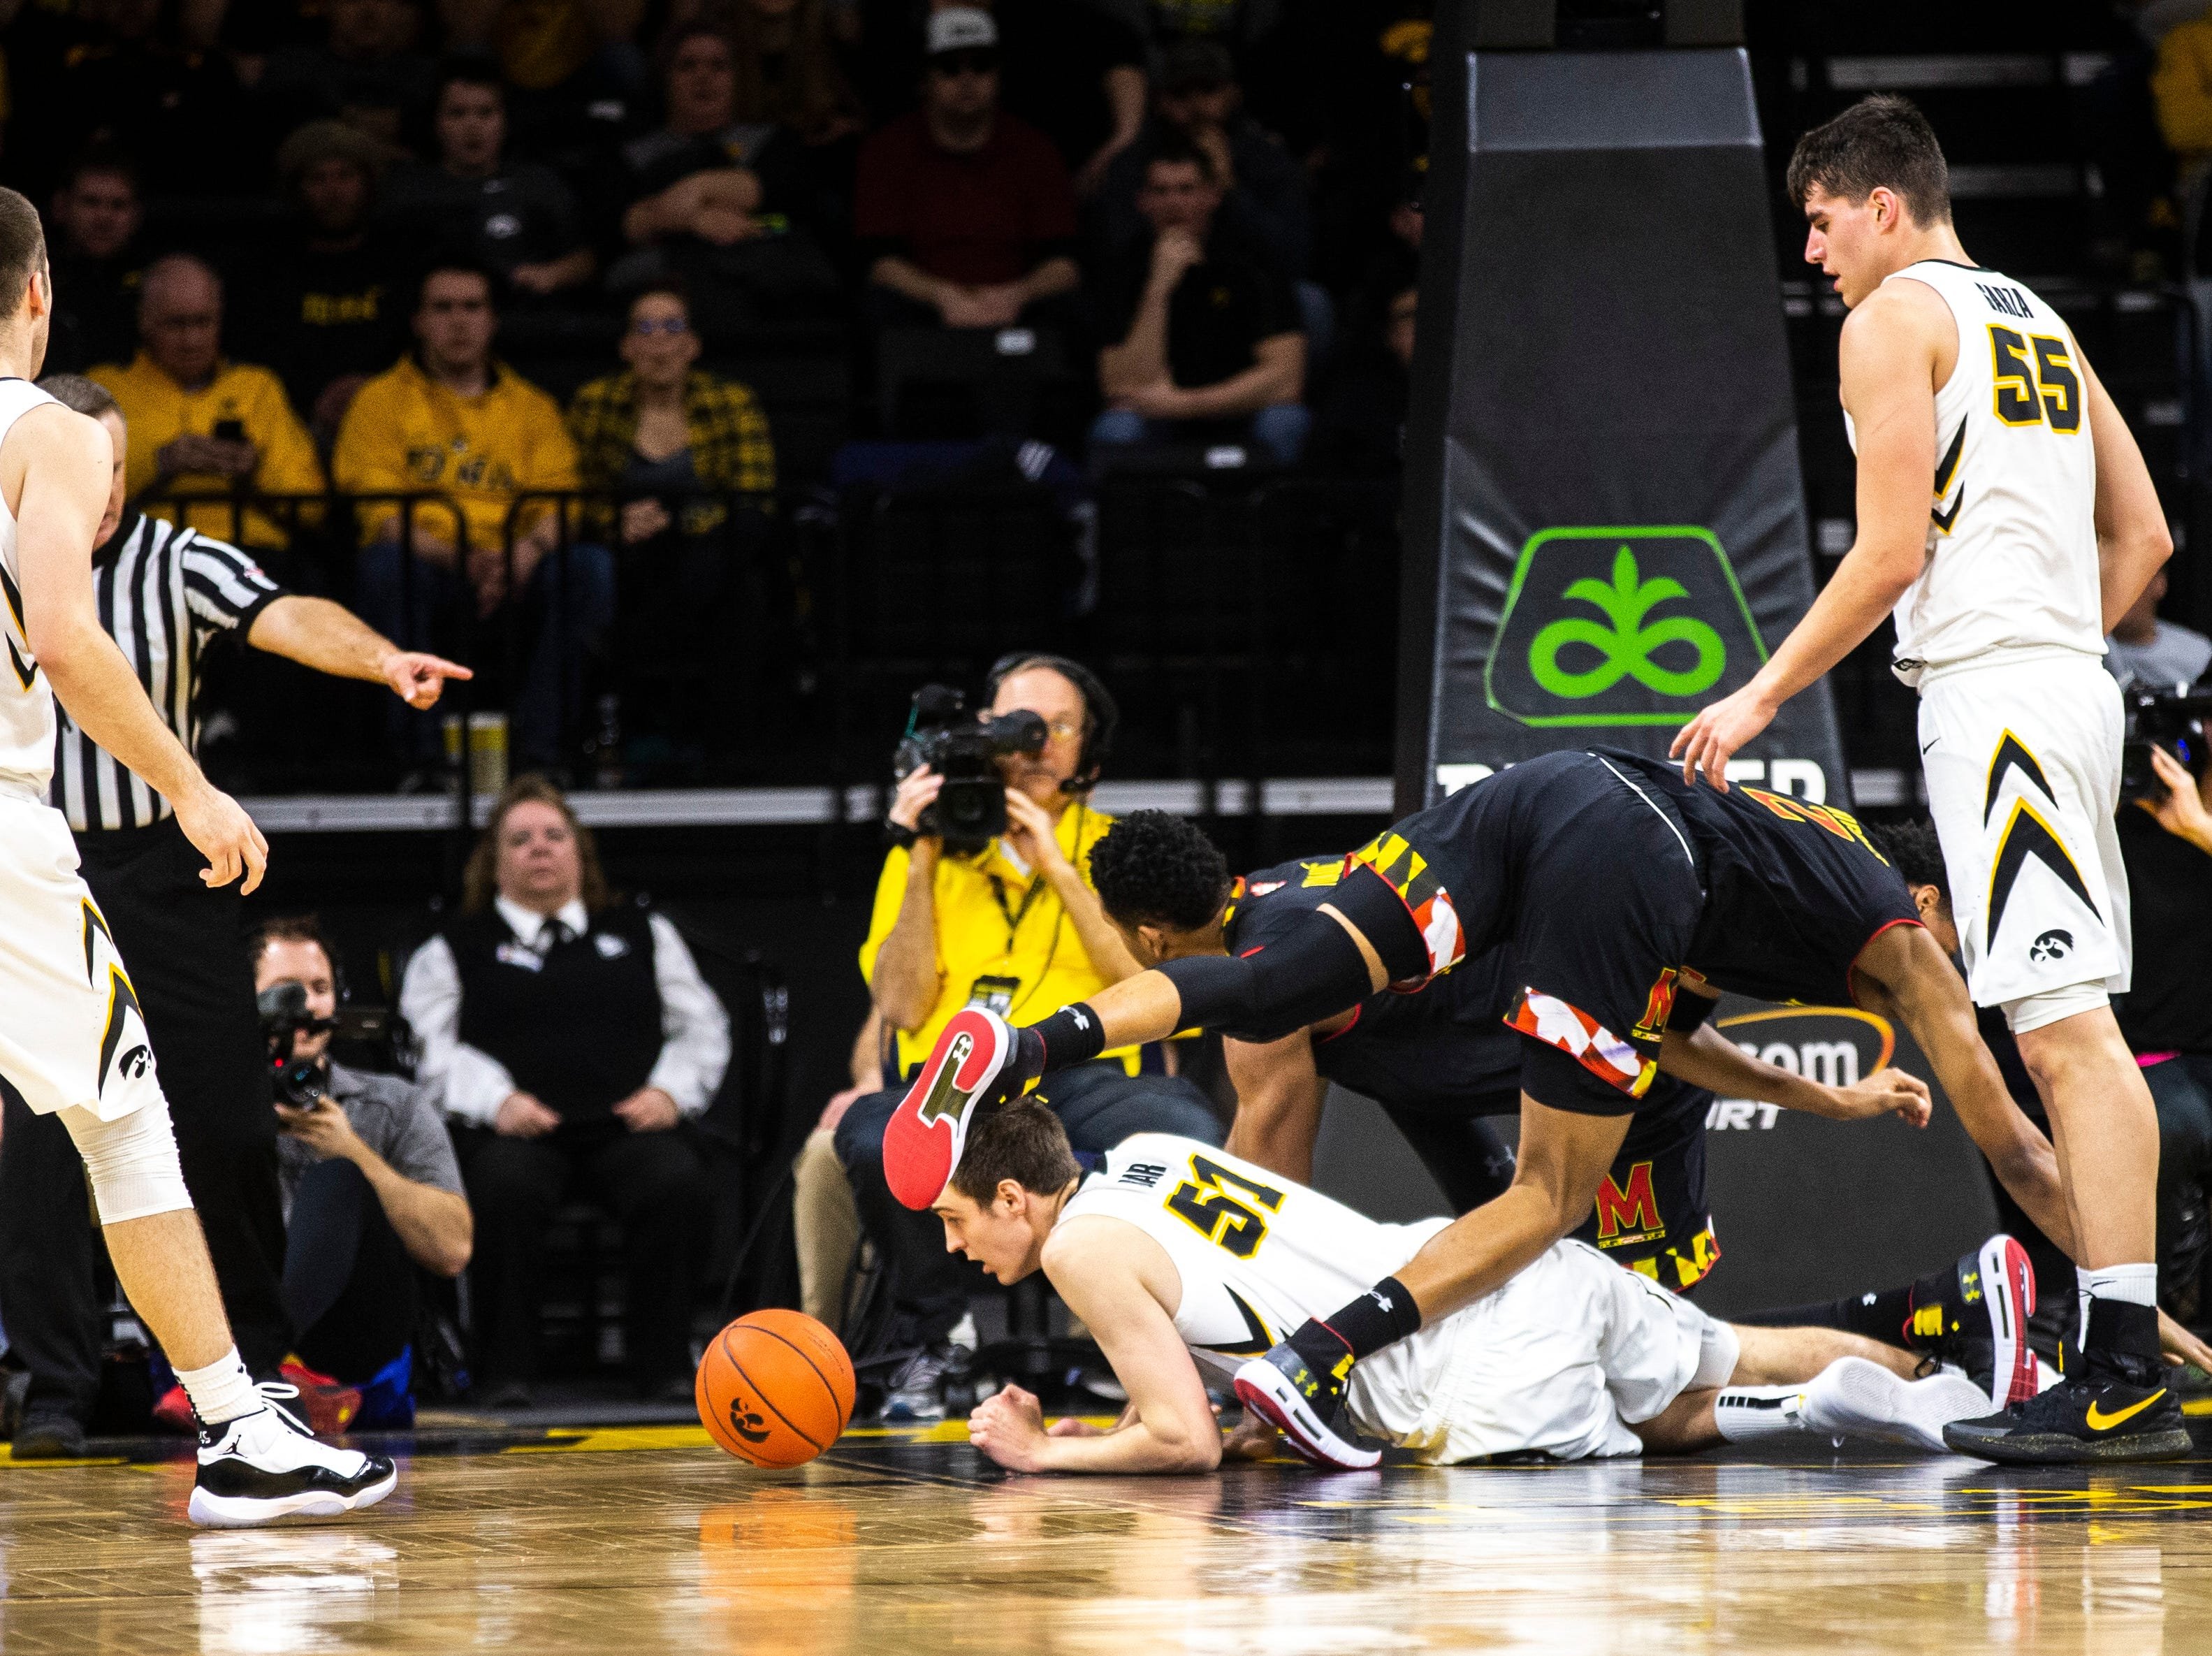 Iowa forward Nicholas Baer (51) falls to the ground while going for a rebound against Maryland guard Aaron Wiggins (2) during a NCAA Big Ten Conference men's basketball game on Tuesday, Feb. 19, 2019 at Carver-Hawkeye Arena in Iowa City, Iowa.